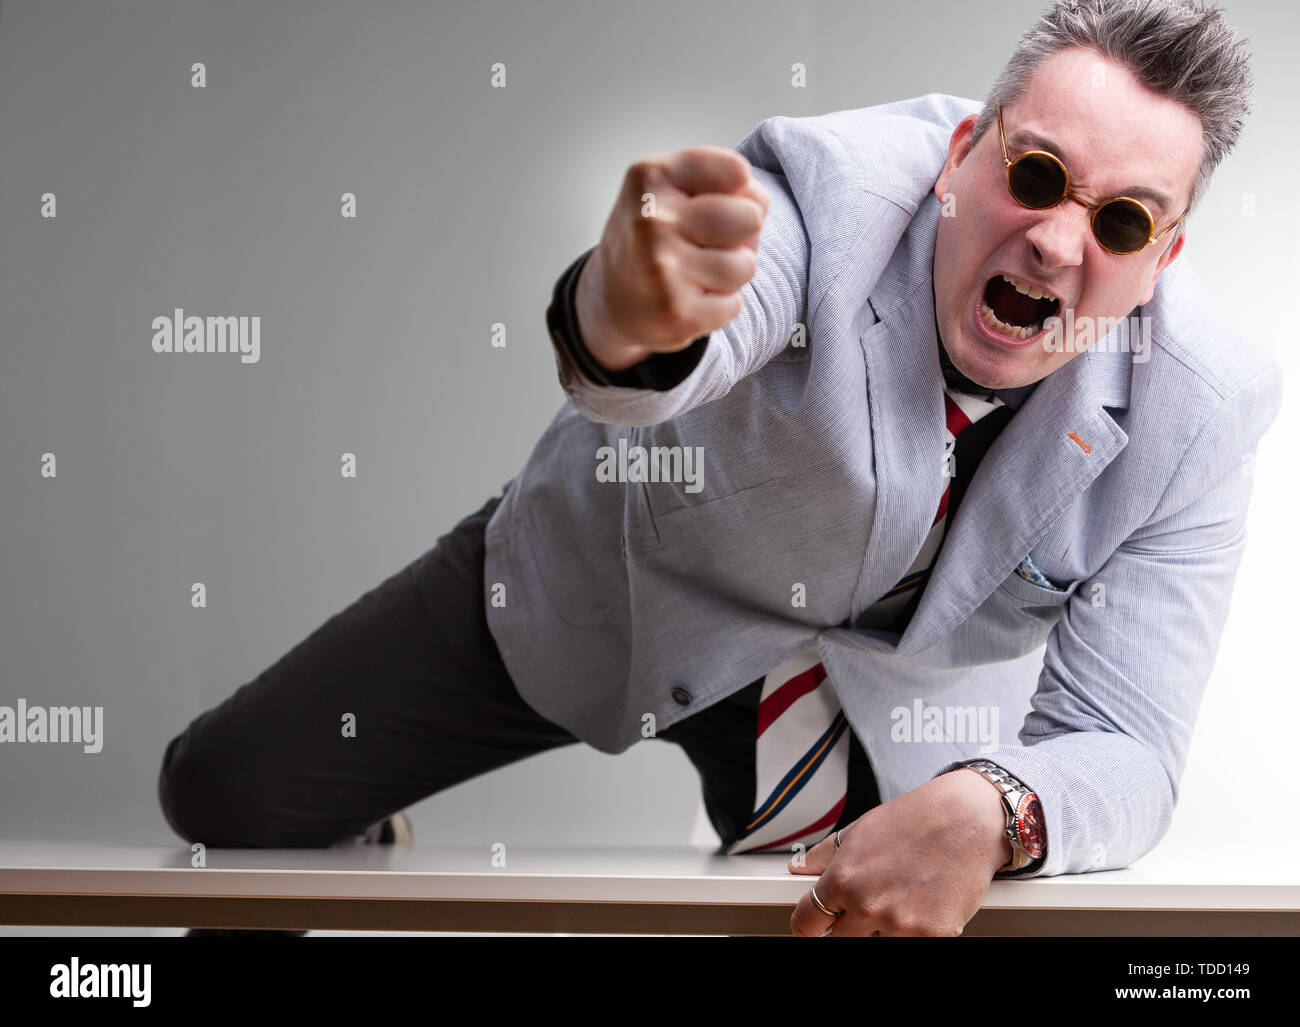 Furious belligerent man punching towards the camera leaning across the table in a show of aggression and domination - Stock Image